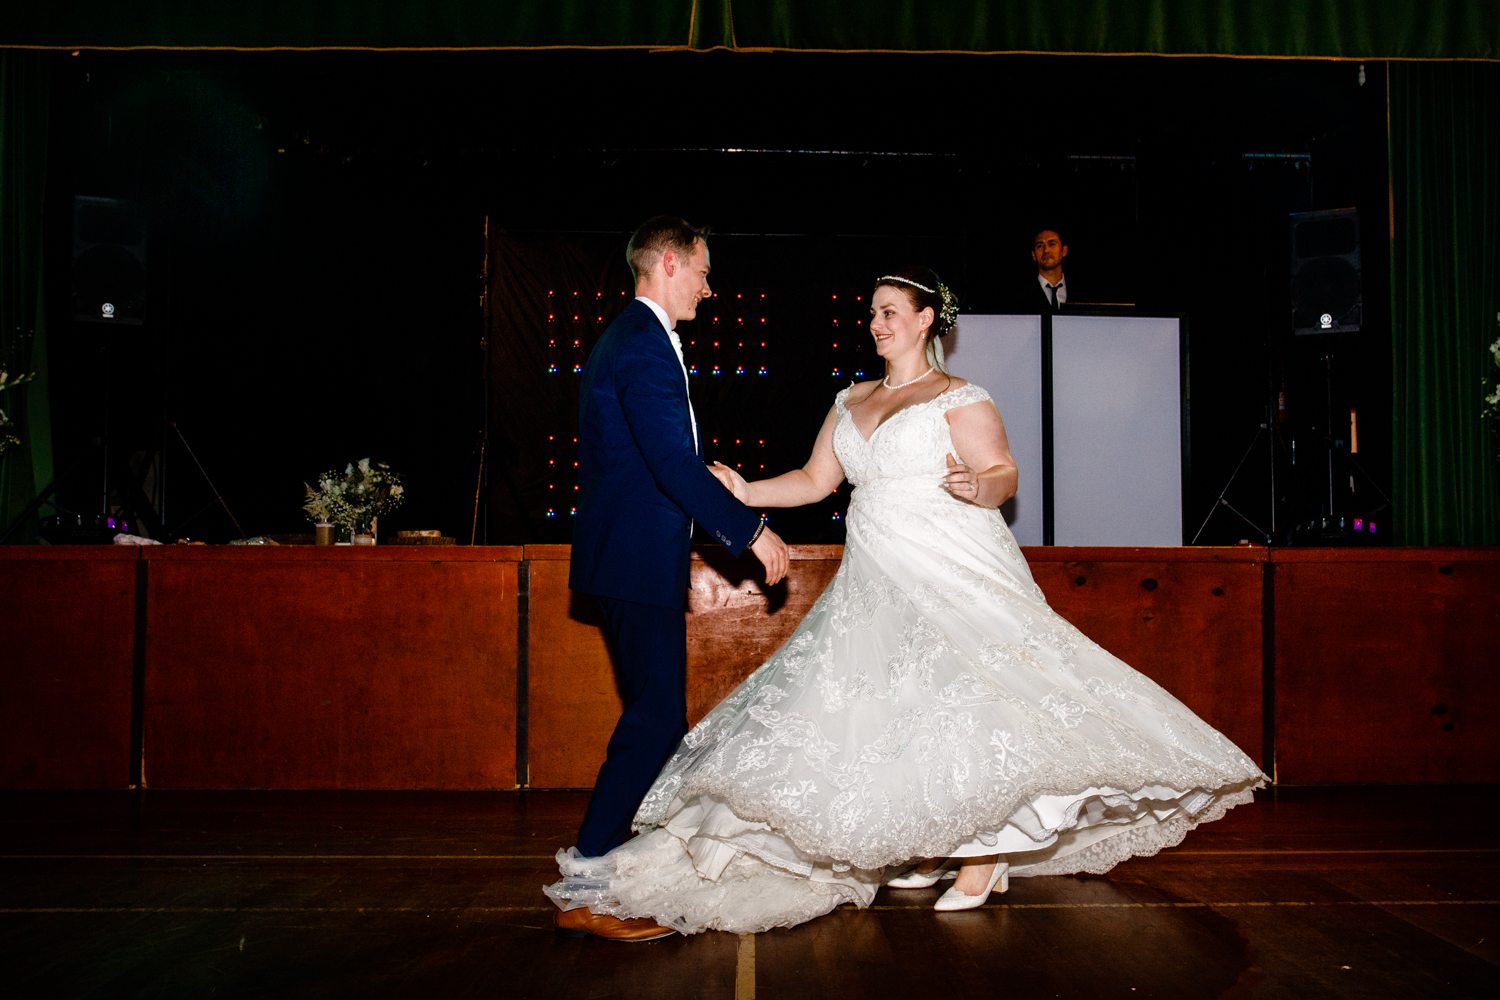 Lancashire-wedding-photographer-adele-and-alex-133.jpg